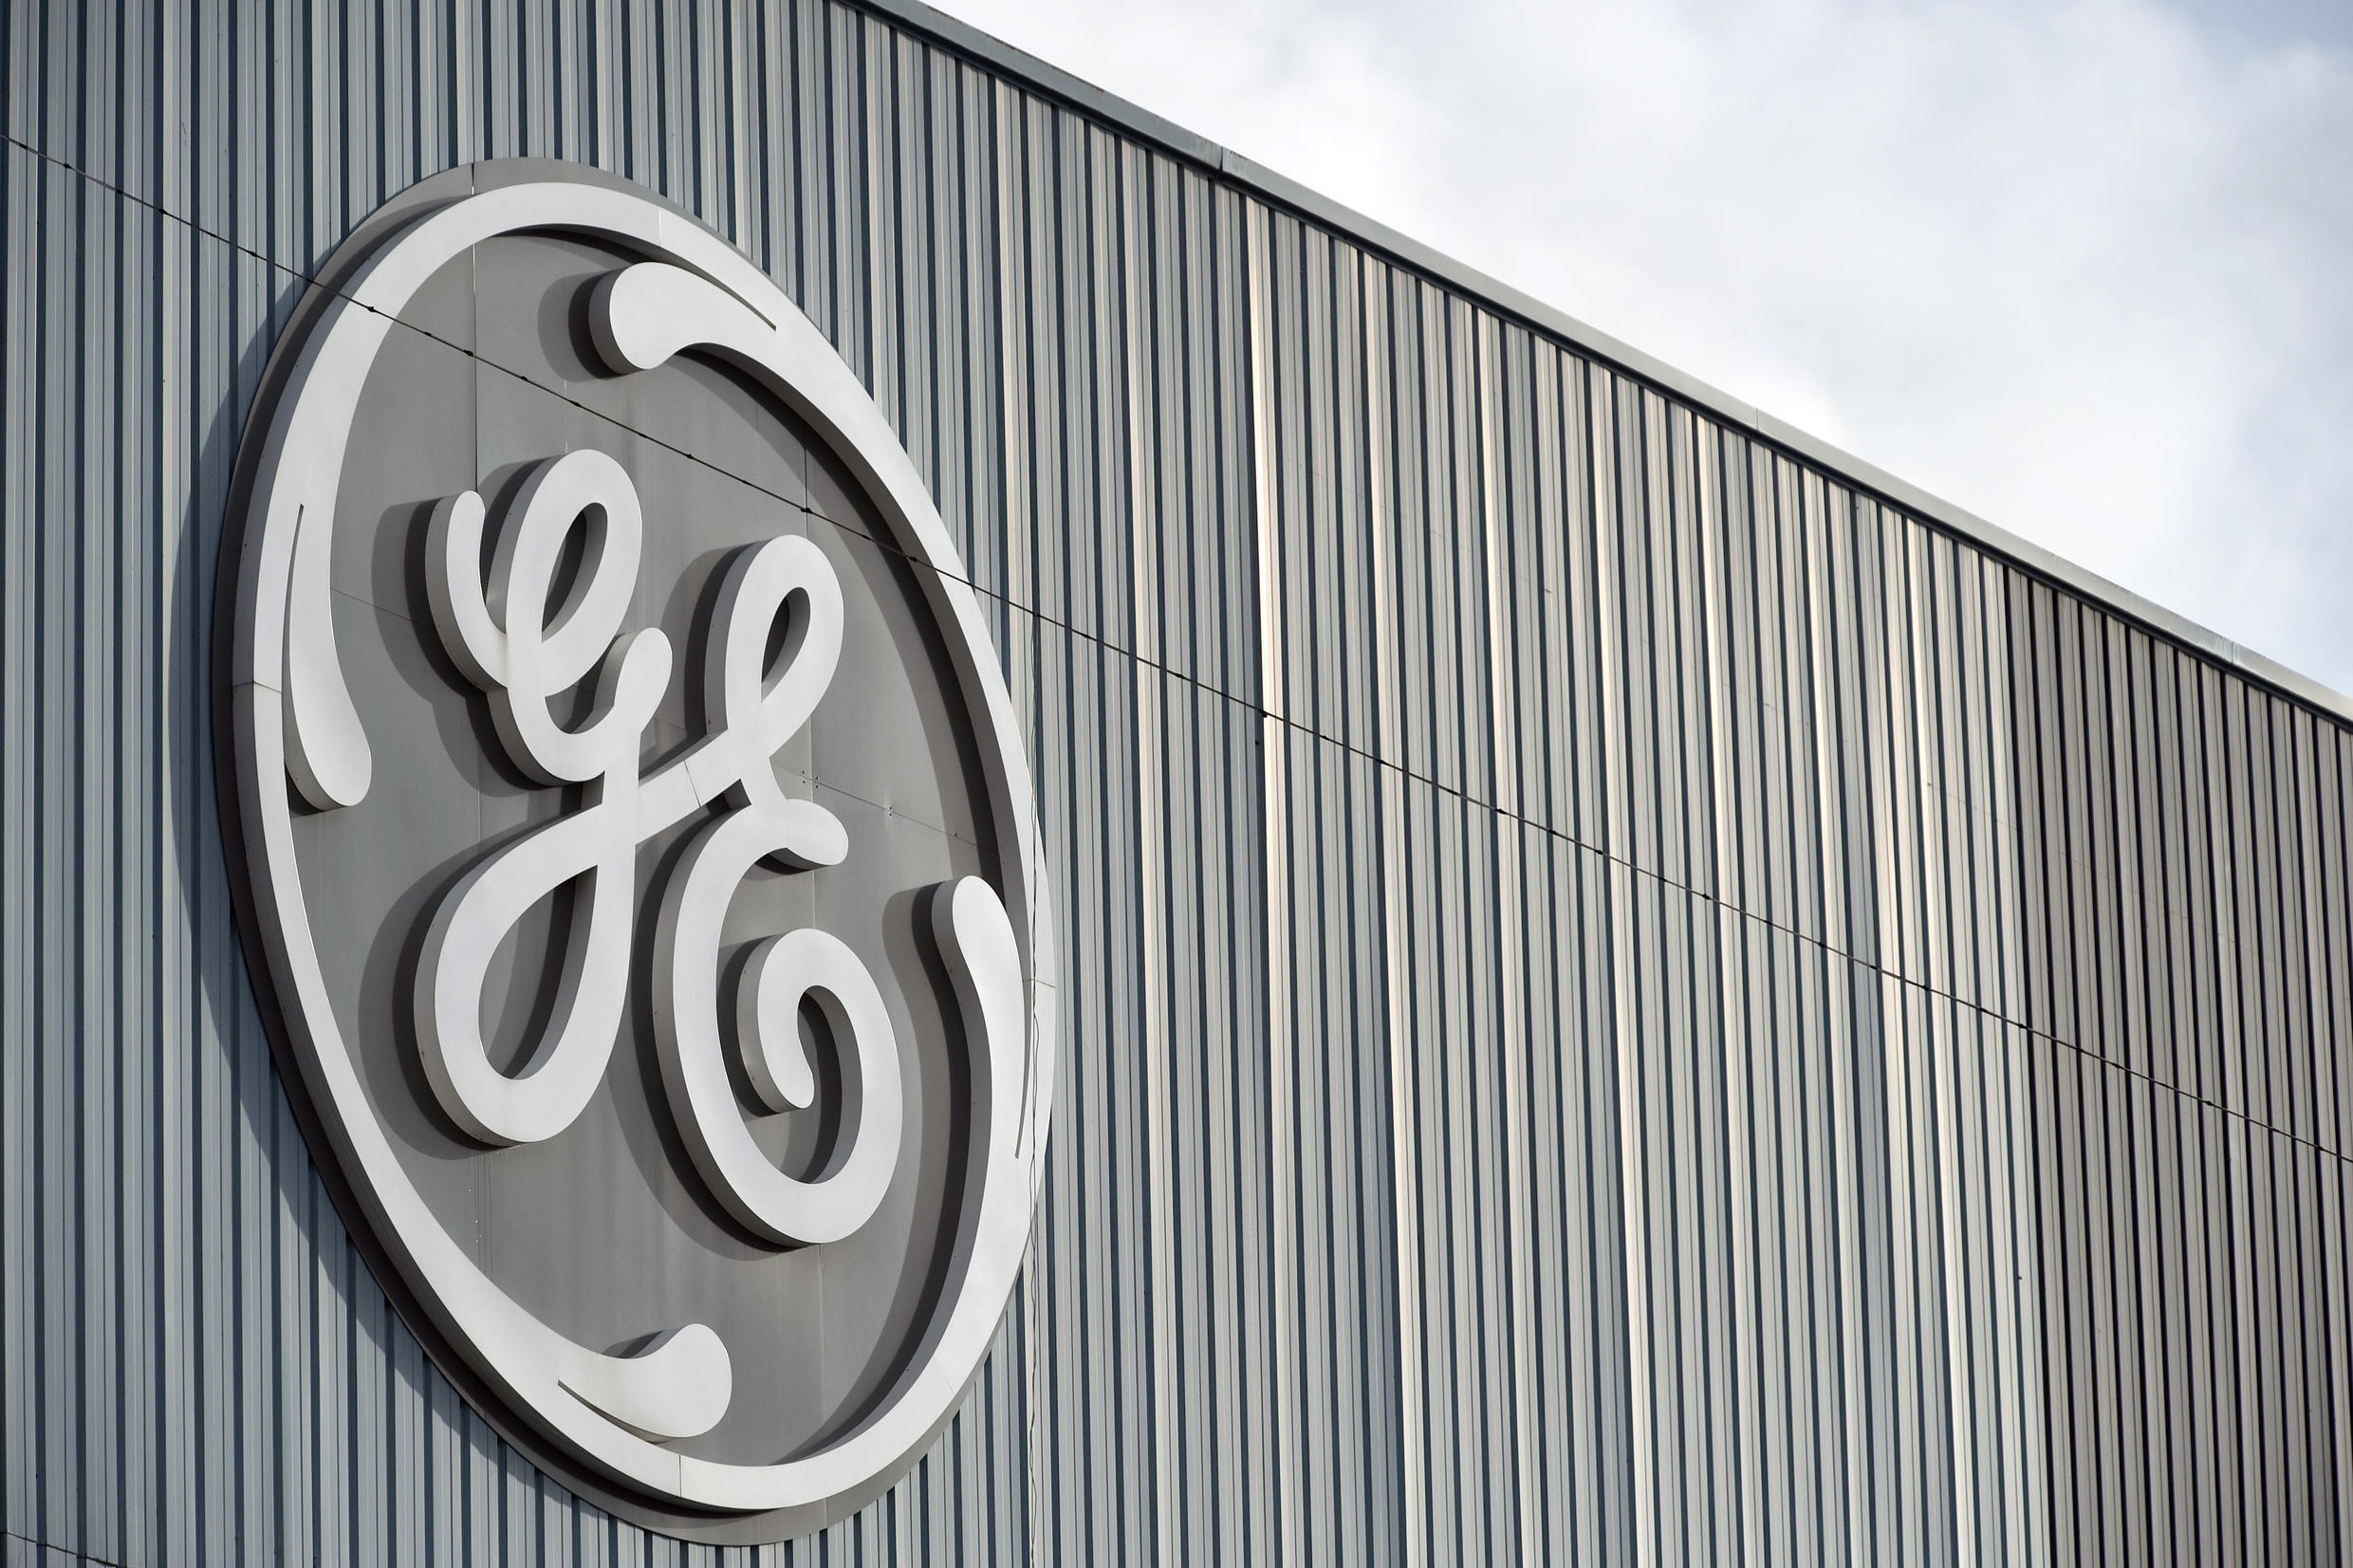 American industrial group General Electric announced Tuesday it planned to cut 1,044 jobs in France.